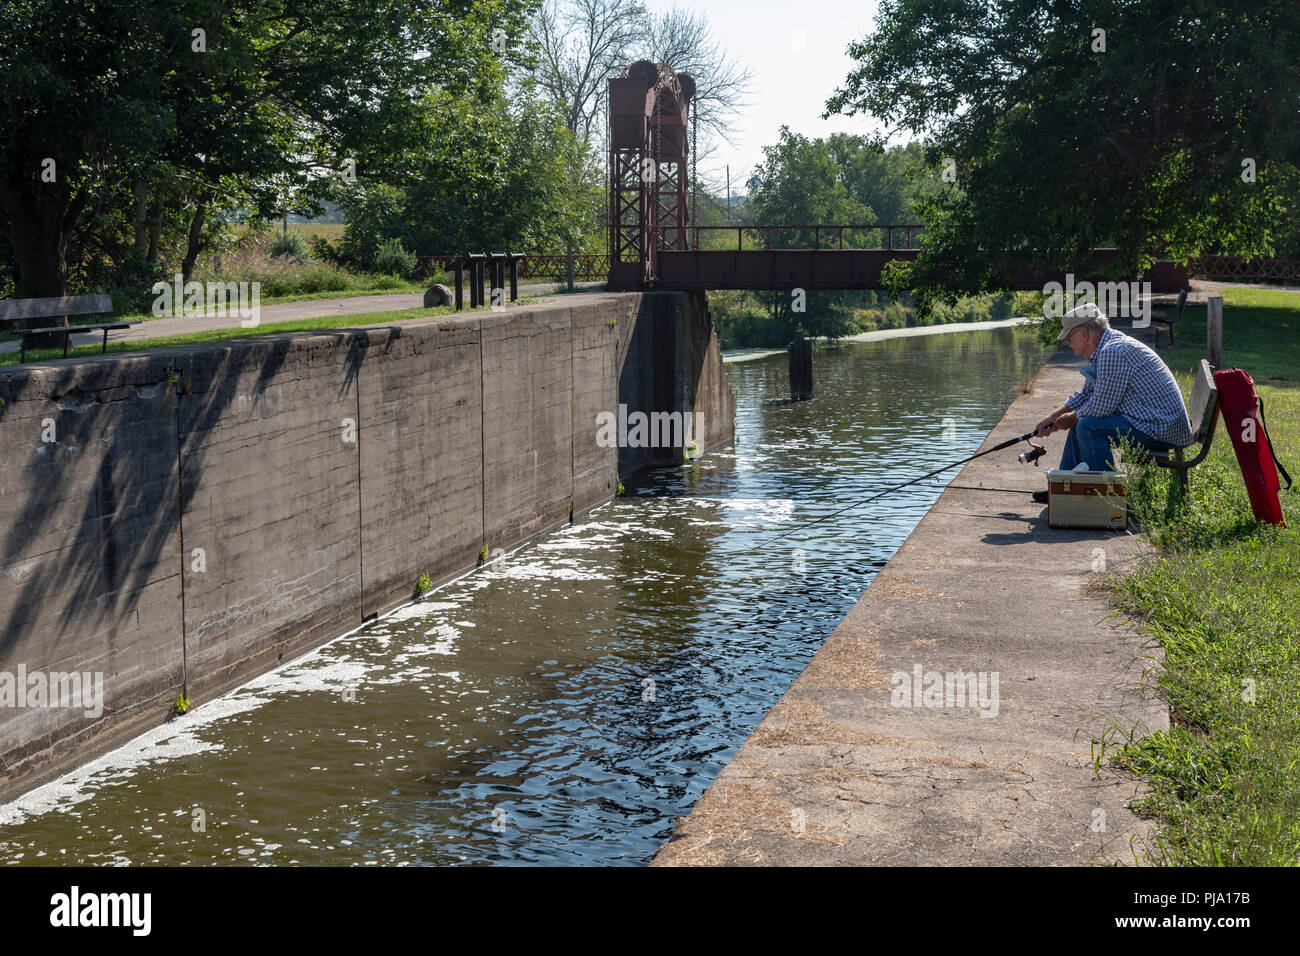 Wyanet, Illinois - A man fishing at Lock 21 of the Hennepin Canal. The canal was completed in 1907 to link the Illinois and Mississippi Rivers, but it - Stock Image